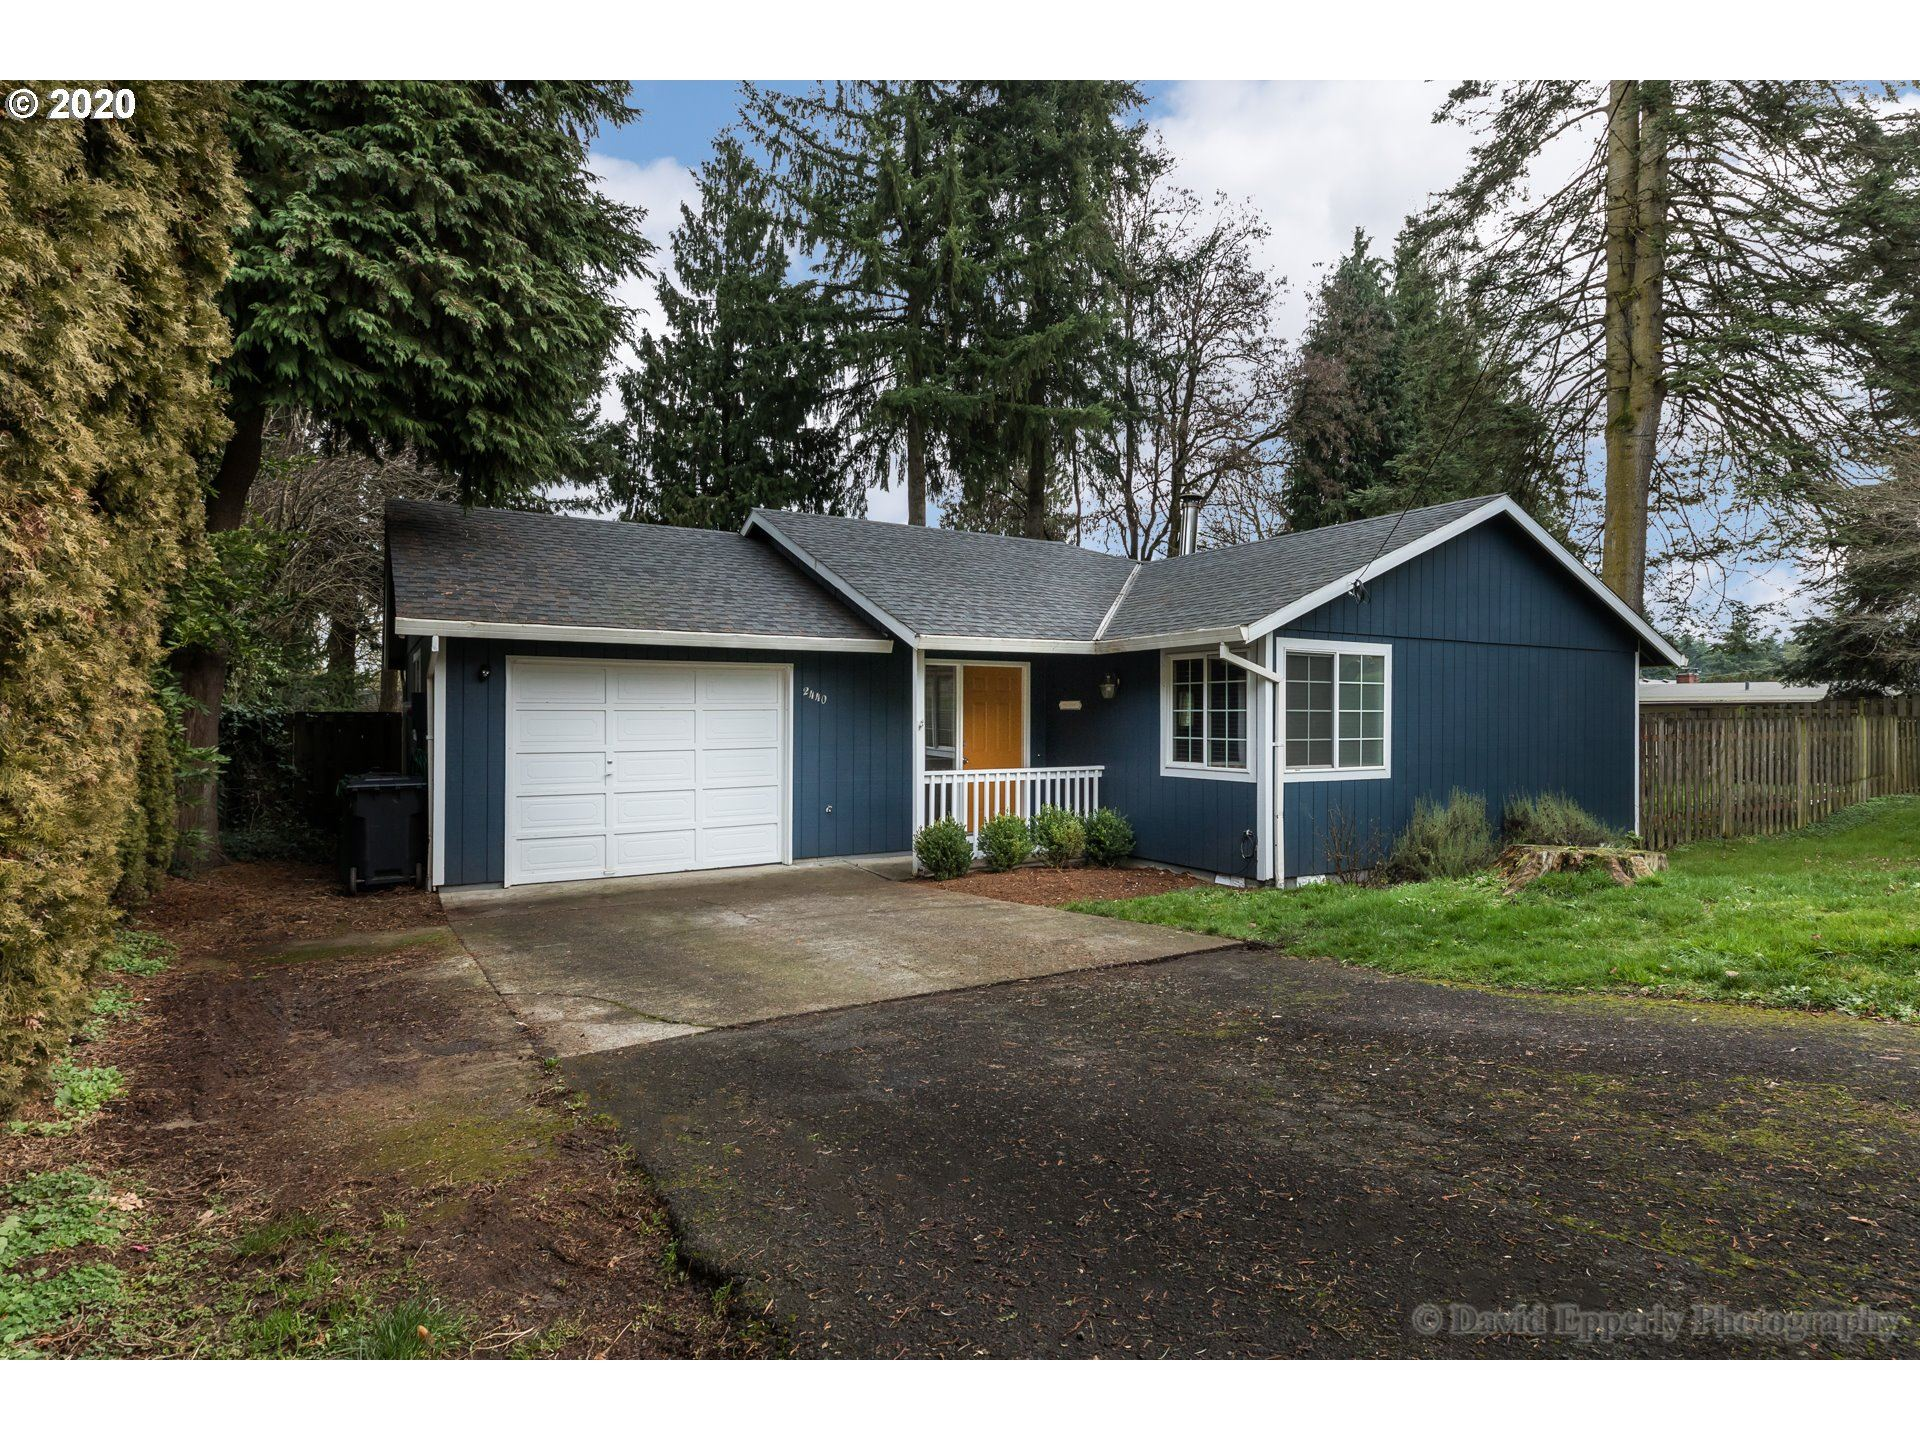 2440 6TH ST, Columbia City, OR 97018 - #: 20006080